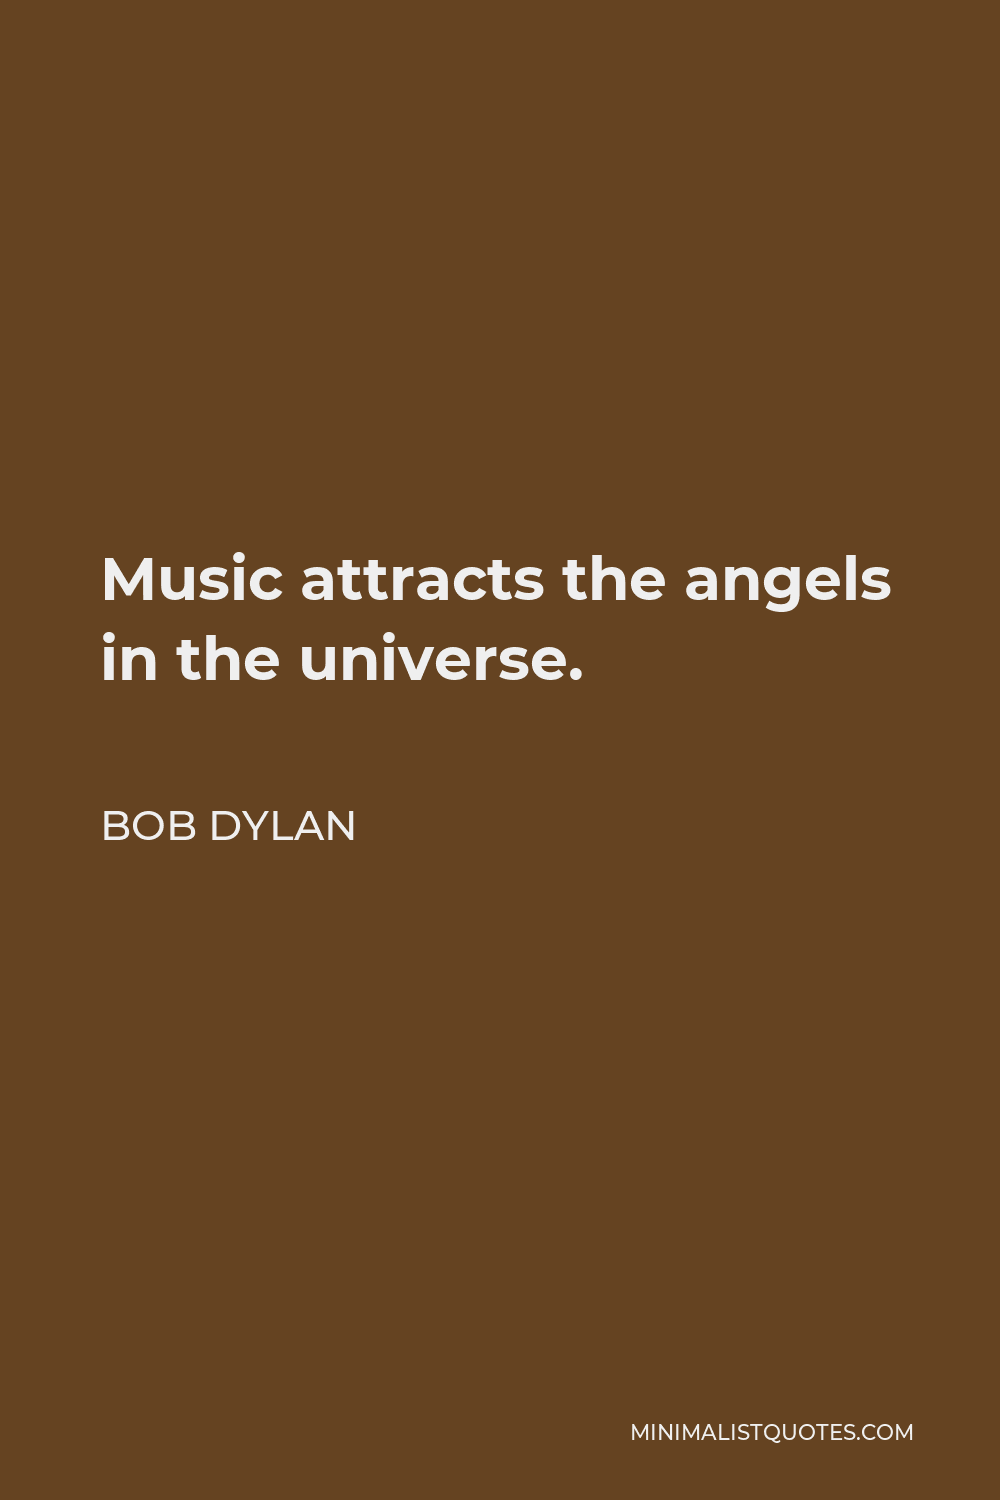 Bob Dylan Quote - Music attracts the angels in the universe.